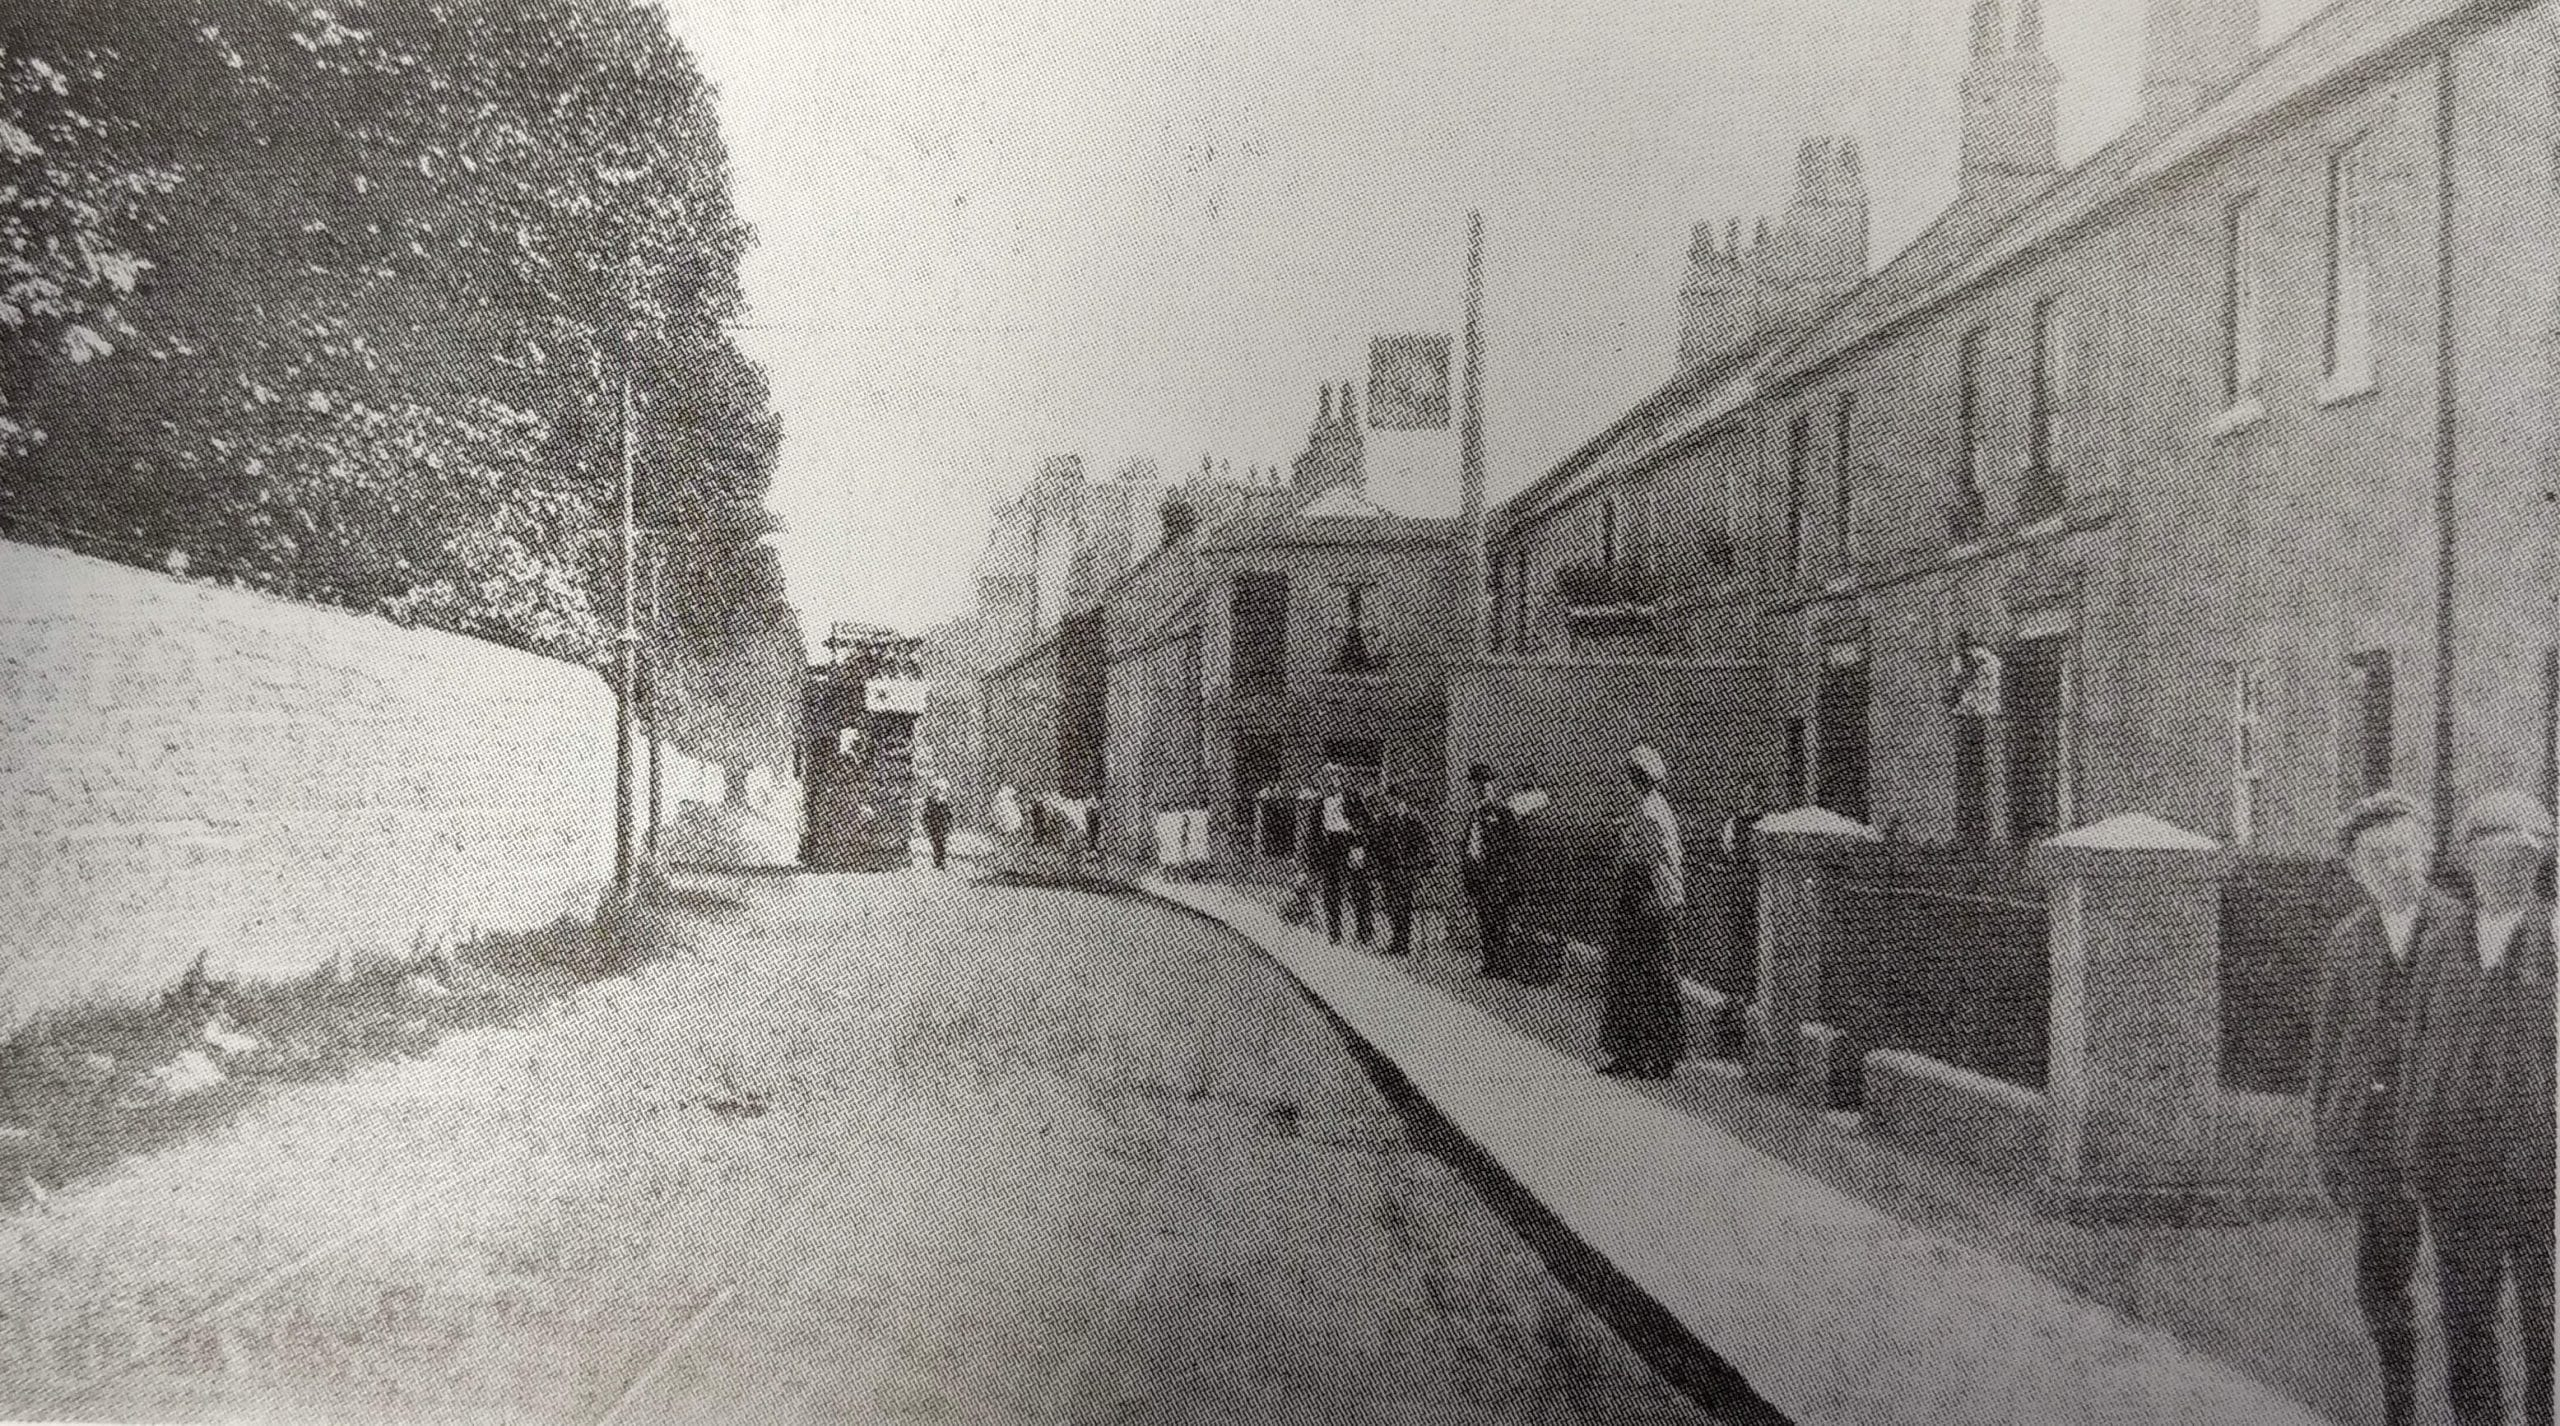 Tram on North Road, Combe Down about 1906